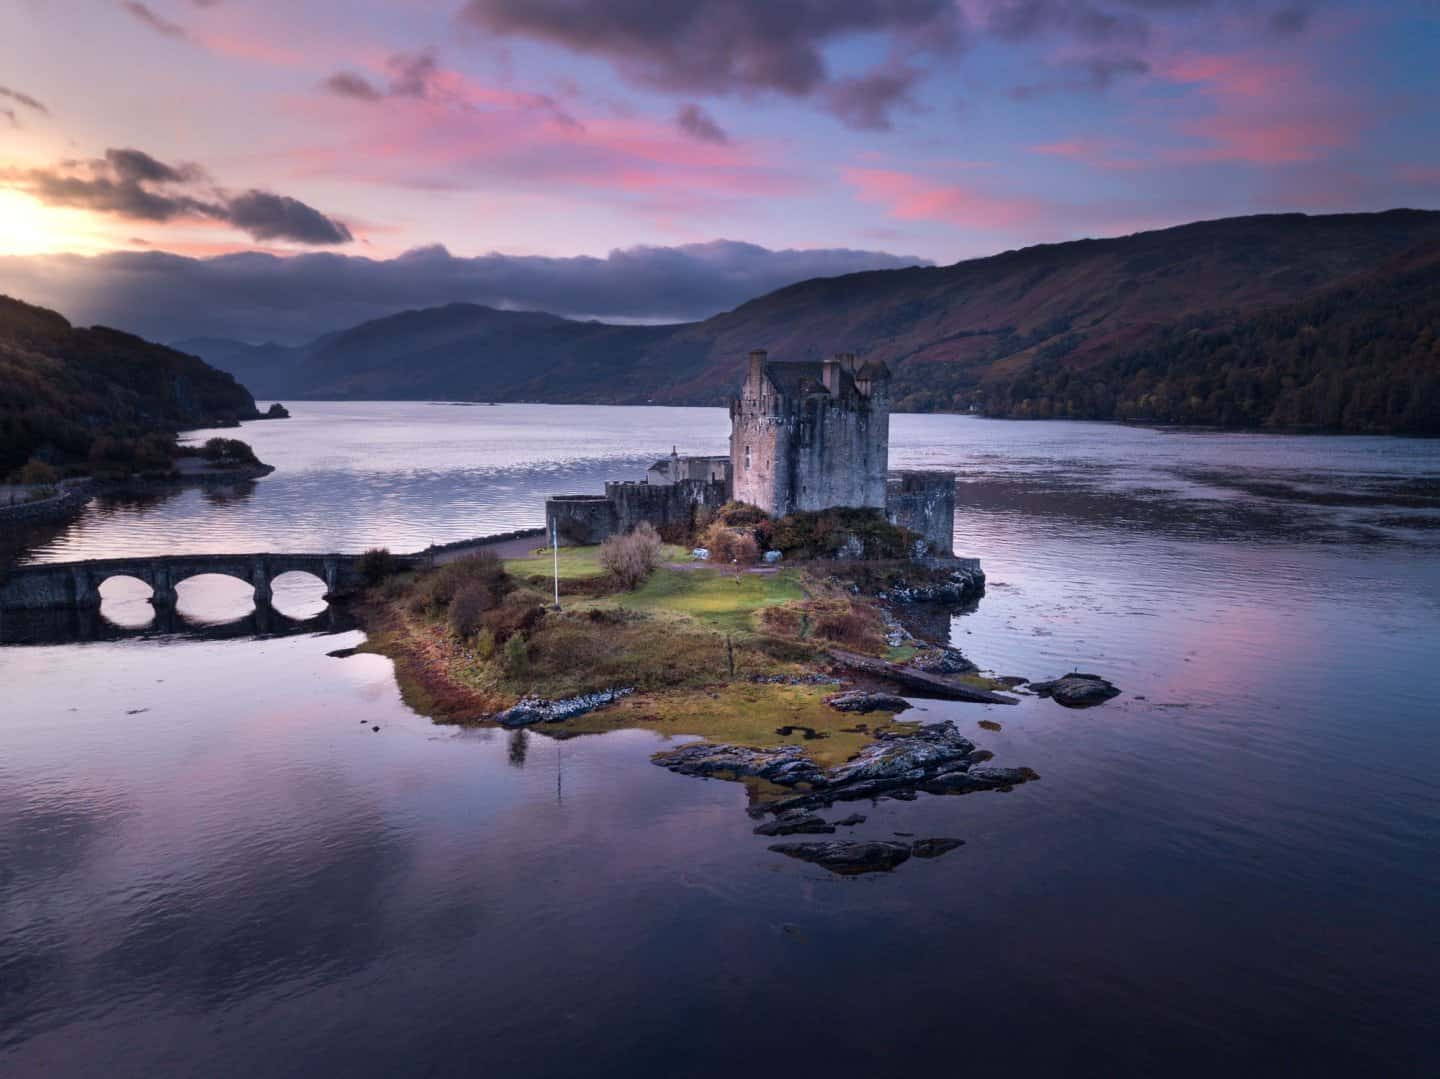 Best castles in Scotland: A drone photo capturing Scotland's best castle, Eilean Donan, at sunrise.